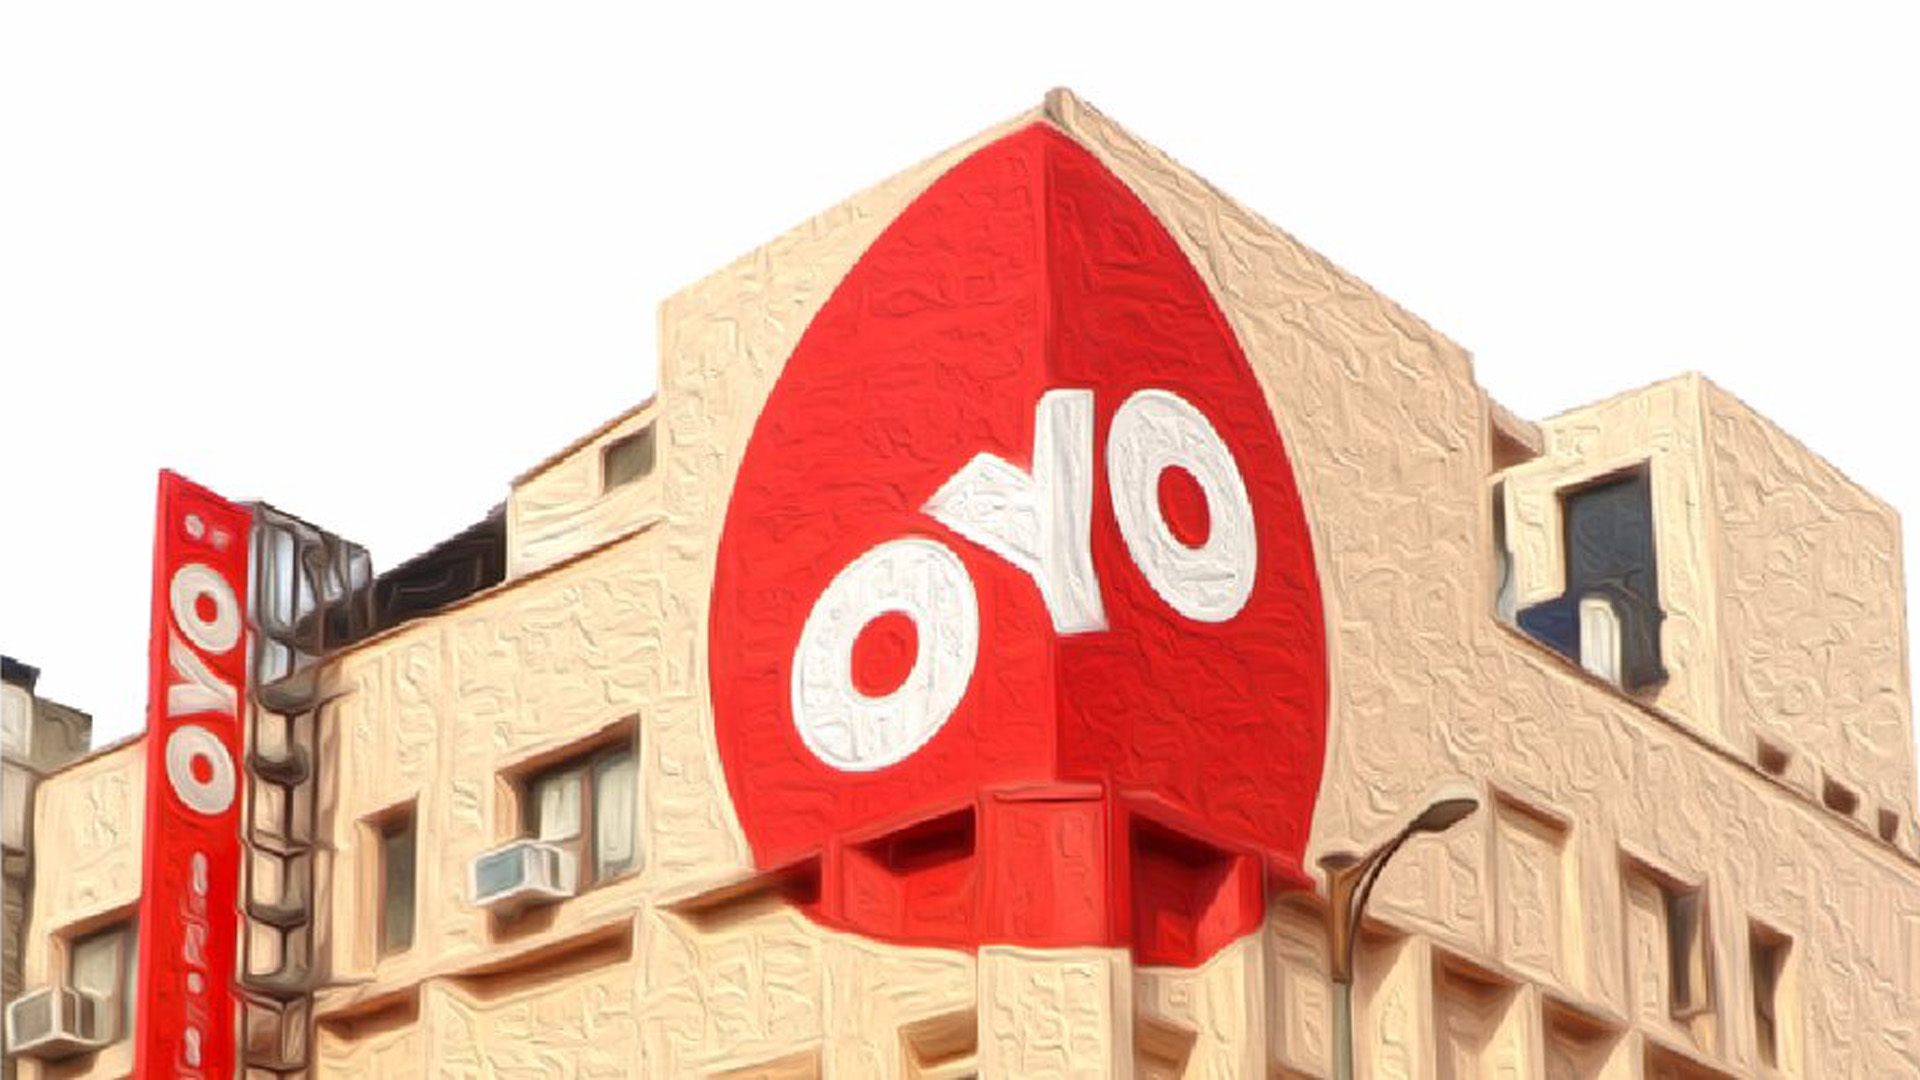 Indian Hotel Chain Oyo Gets Reprieve Against Insolvency Proceedings